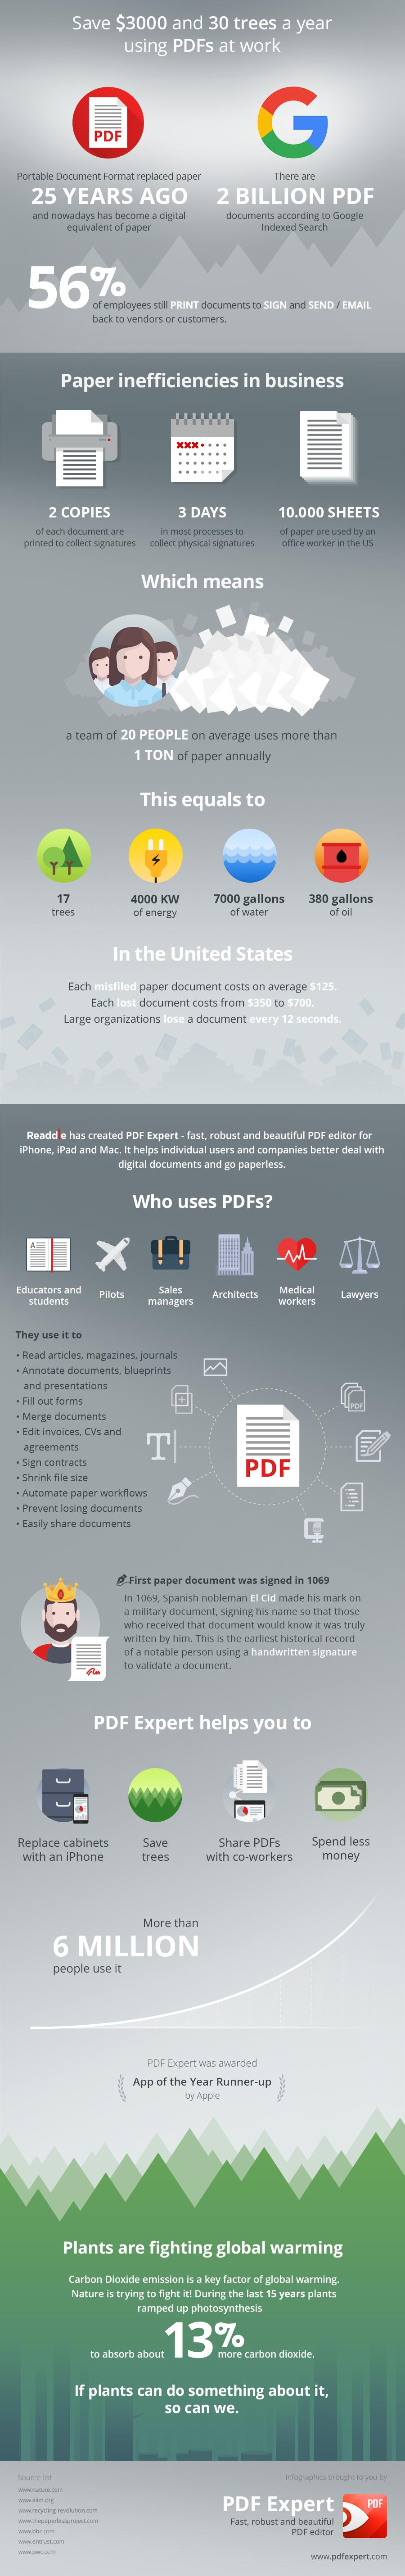 How Using PDFs Can Save 30 Trees And $3000 A Year! - Infographic